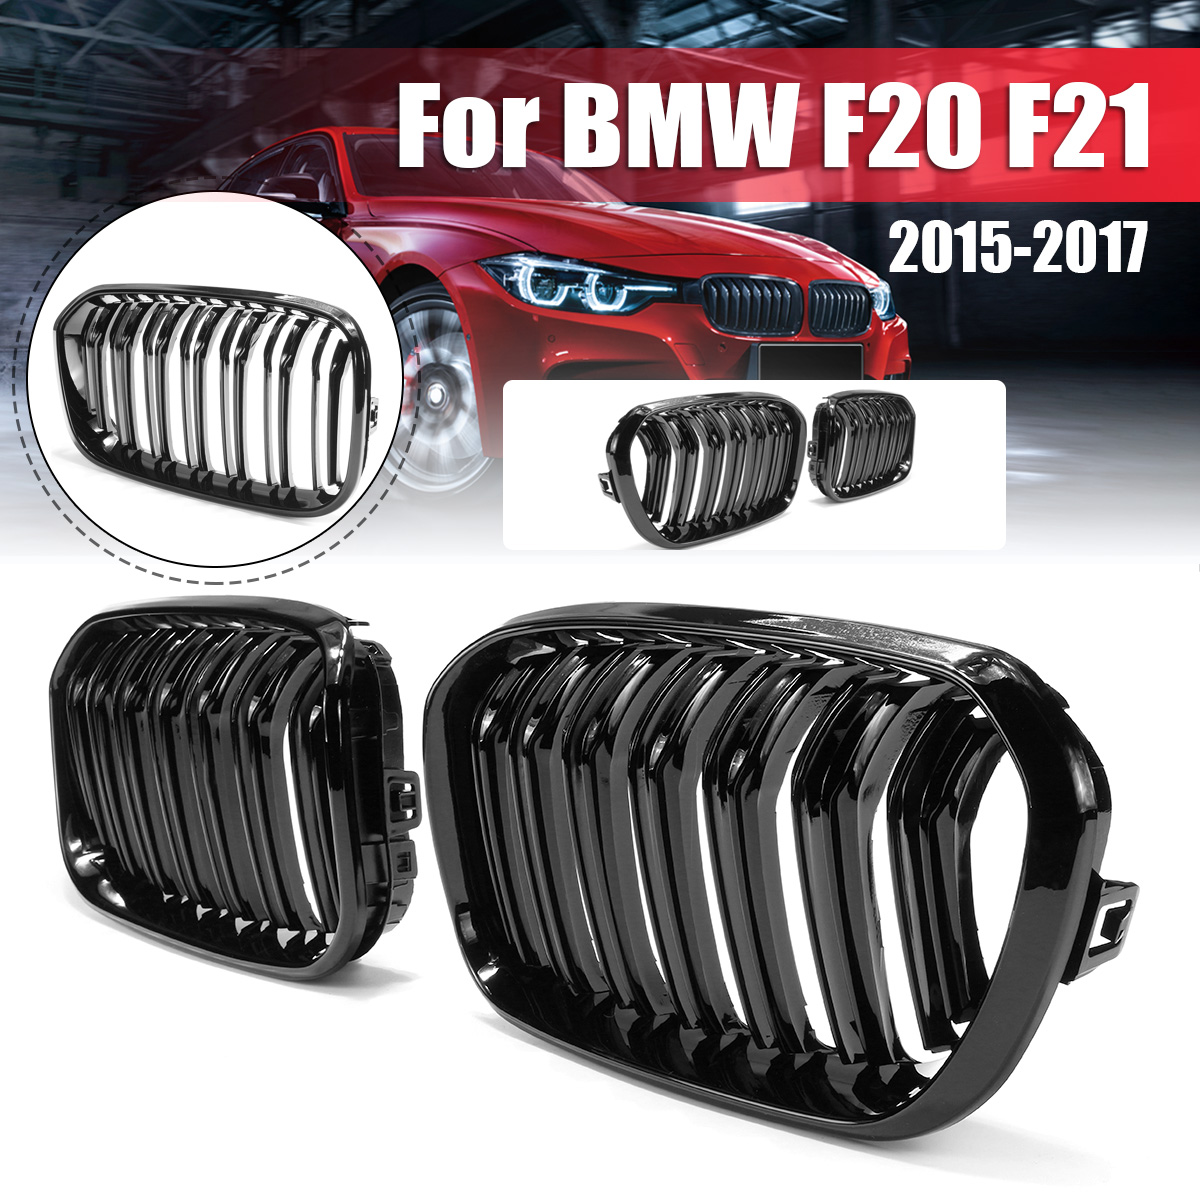 For BMW F20 F21 1 Series 2015 2016 2017 Pair Gloss Matt Black Double Slat Line M Color Front Racing Grill Kidney Grill Grille gloss black front dual line grille grill for bmw f20 f21 1 series 118i 2010 2011 2012 2013 2014